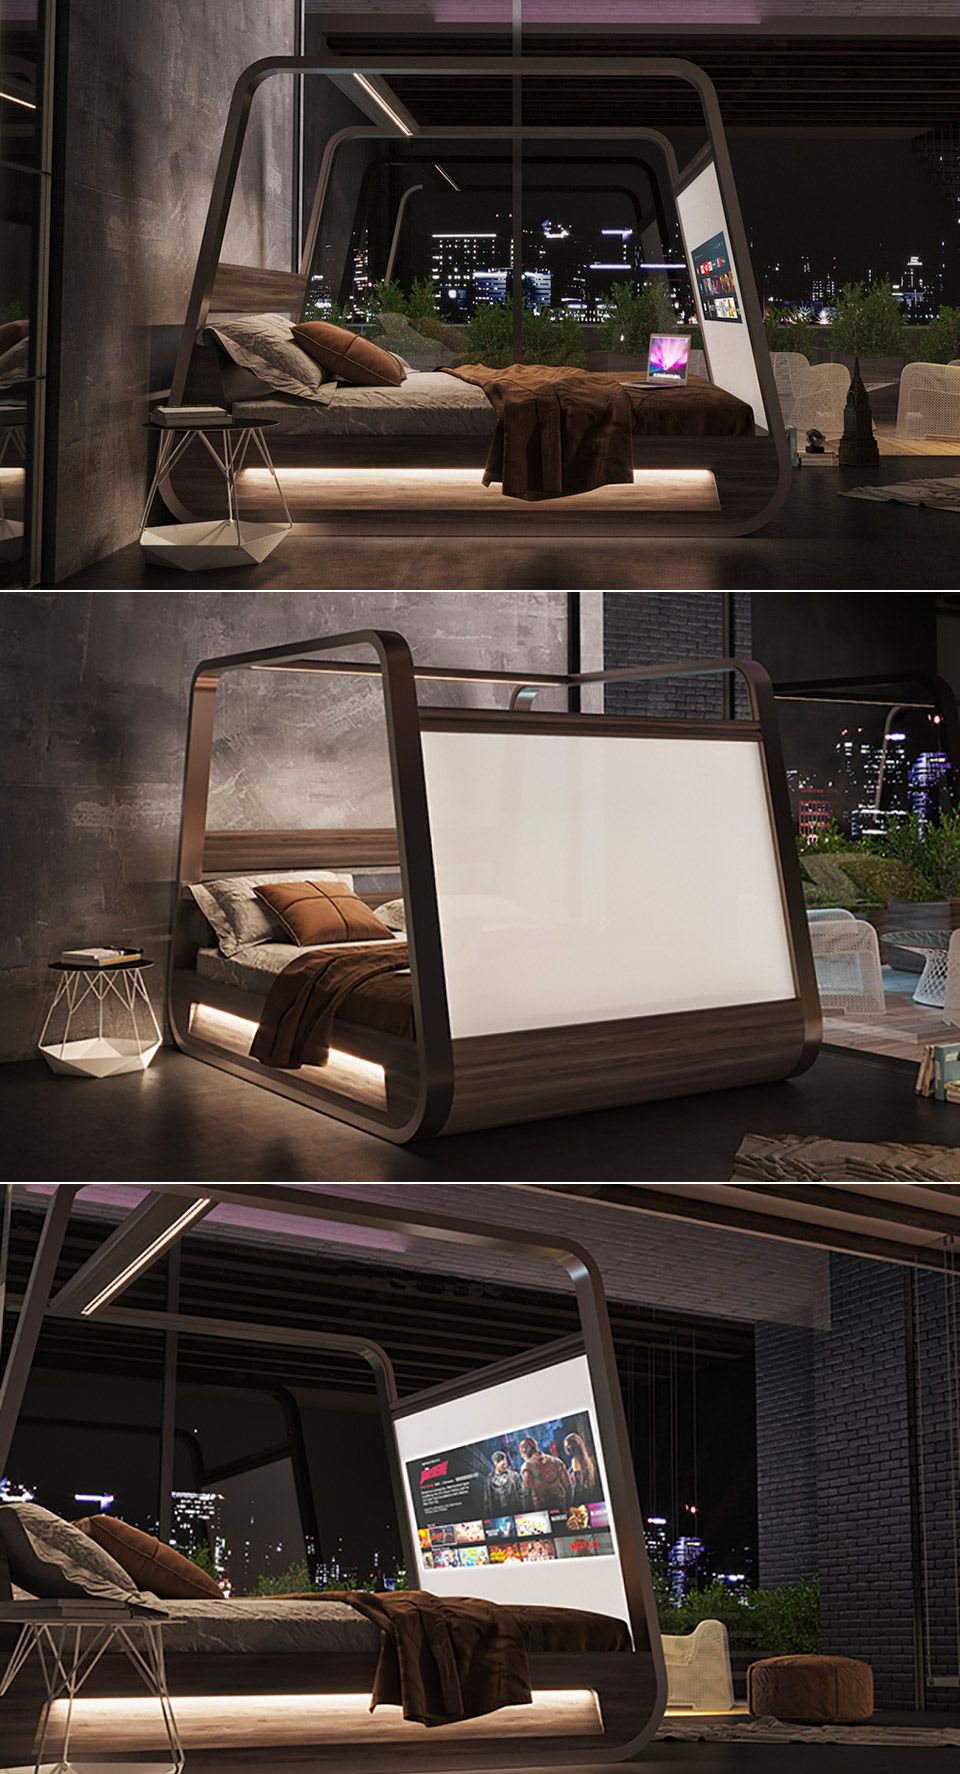 HighTech Bed Makes it Easy to Watch Movies and Surf the